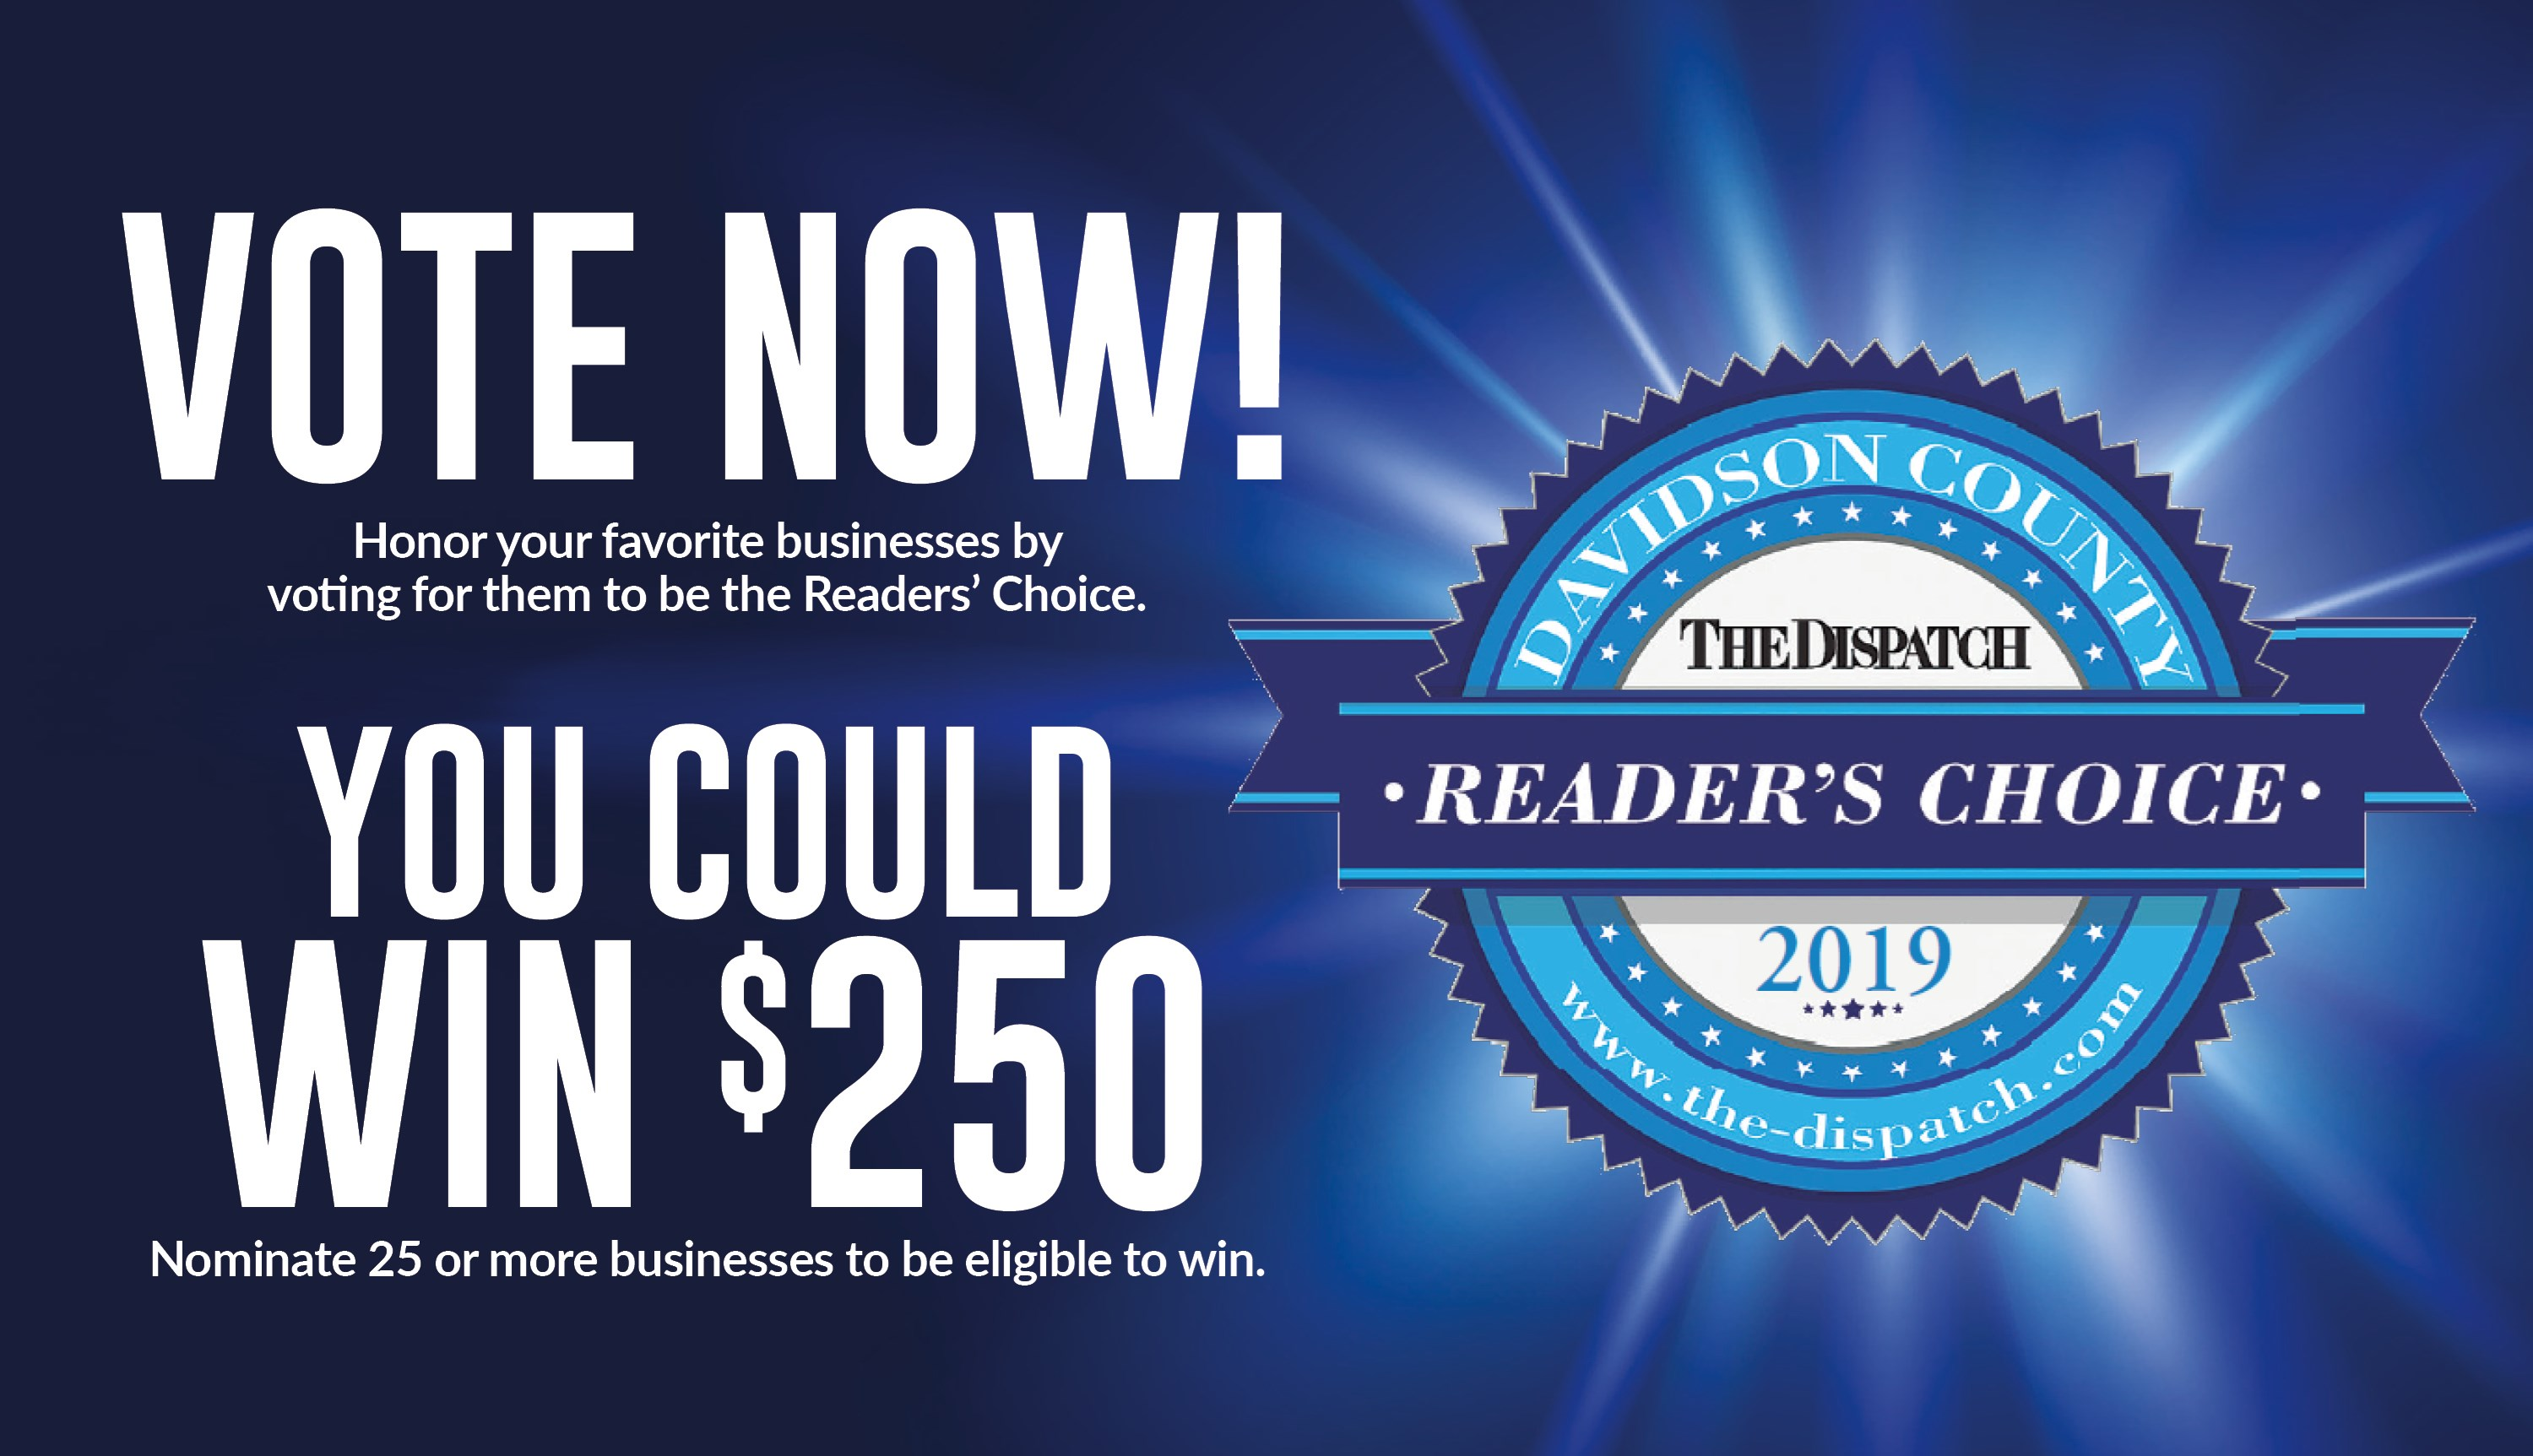 Readers Choice 2019 - Contests and Promotions - The Dispatch